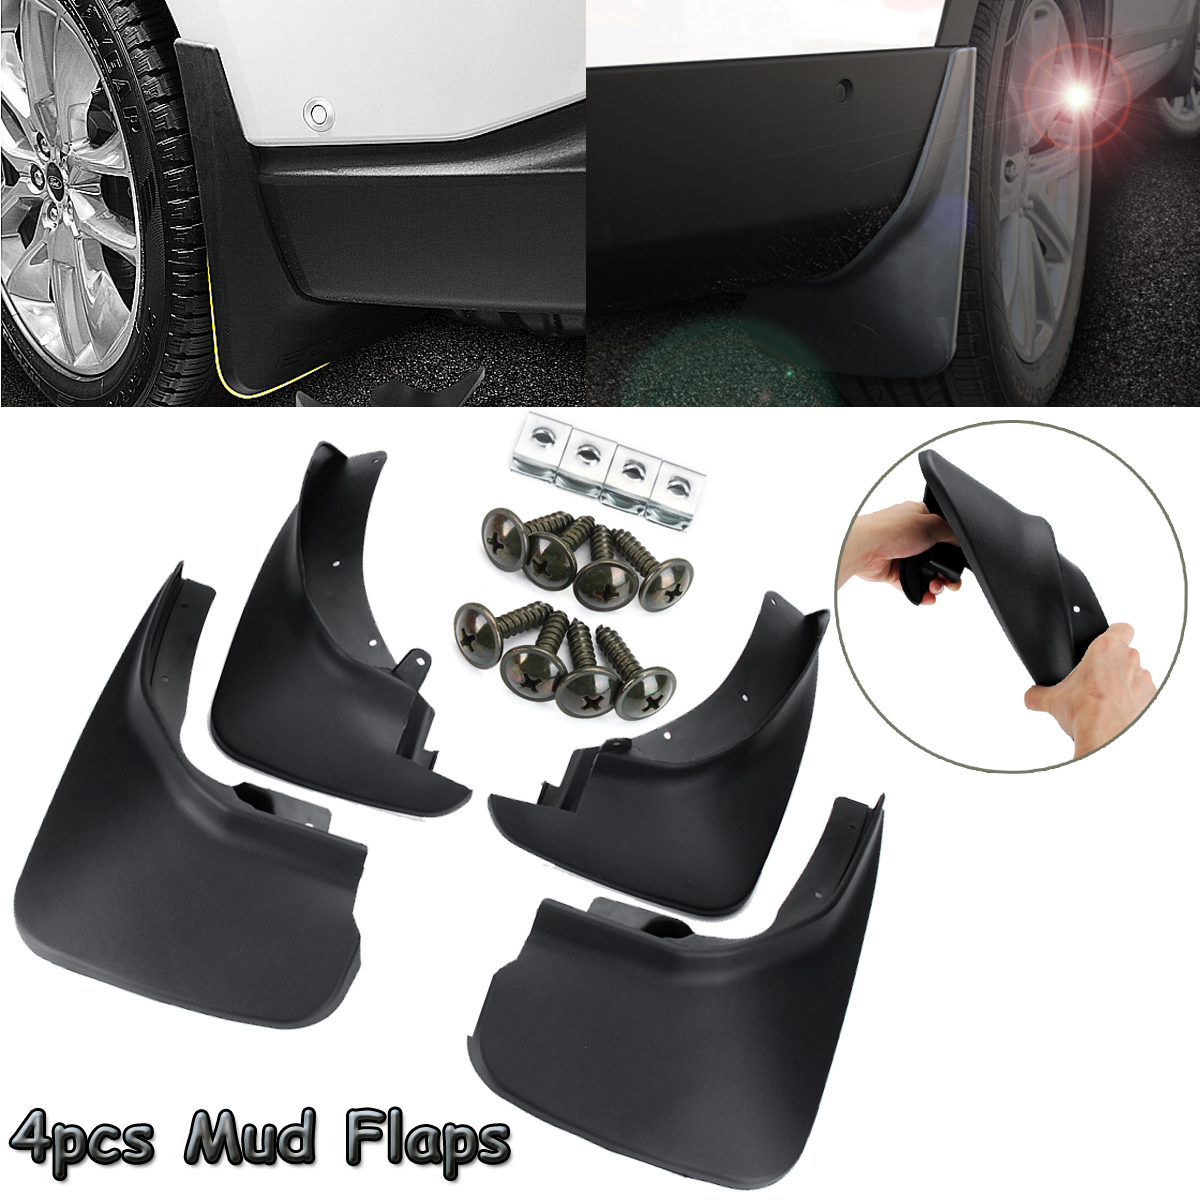 Splash Guards Mud Flaps Mud Guards 4pcs For Ford Explorer 2011-2016